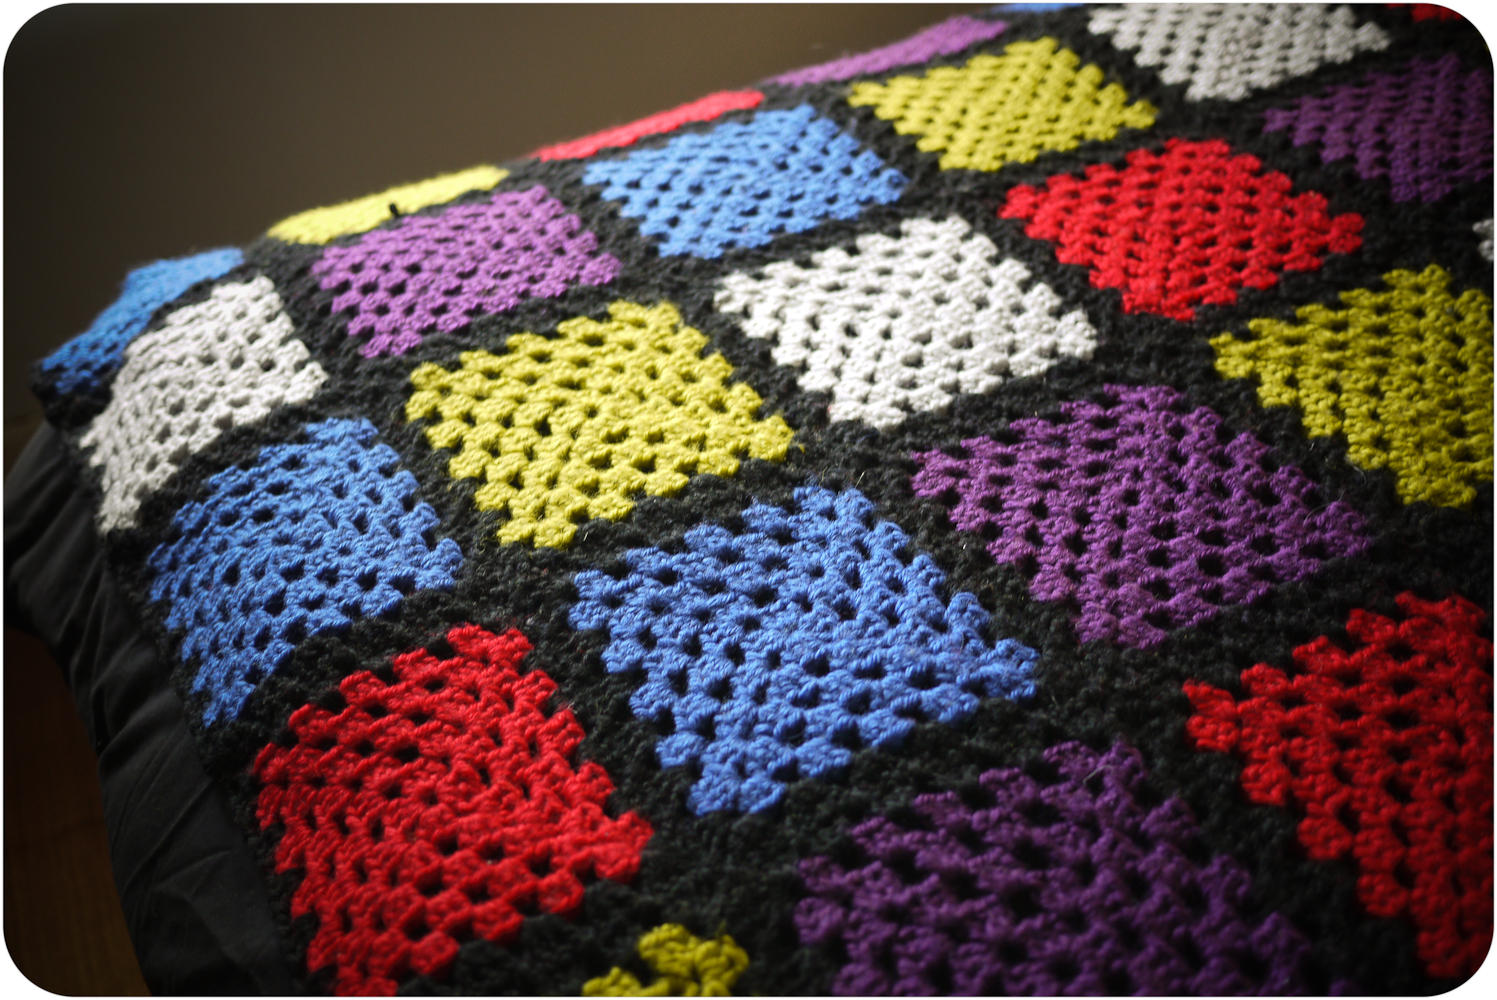 How To Crochet A Granny Square Blanket Pattern : Square Crochet Blanket ? Crochet Club